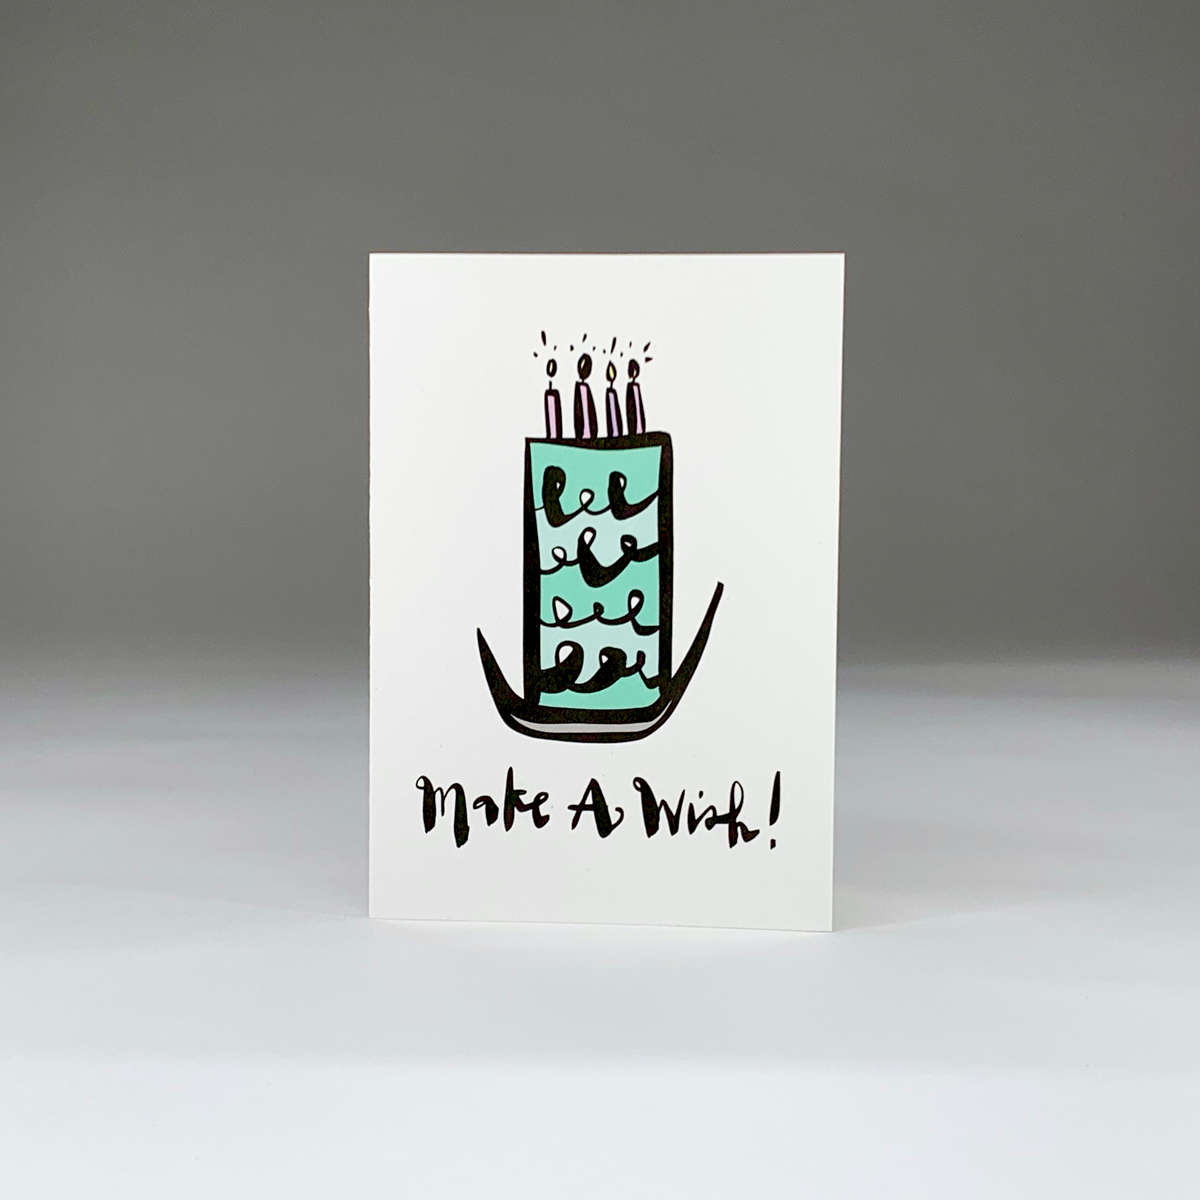 purchase herepressure's on... make a wish. whether they are celebrating their 6th birthday or their 106th birthday, this super fun card is a great choice!each card:is printed on 100# recycled + responsibly-sourced paper //measures 3.5{quote} x 5{quote} //is accompanied by a recycled kraft paper 4-bar envelope //professionally printed //individually packaged in sealed cellophane sleeve //---------------------crafted + printed in colorado, usa.